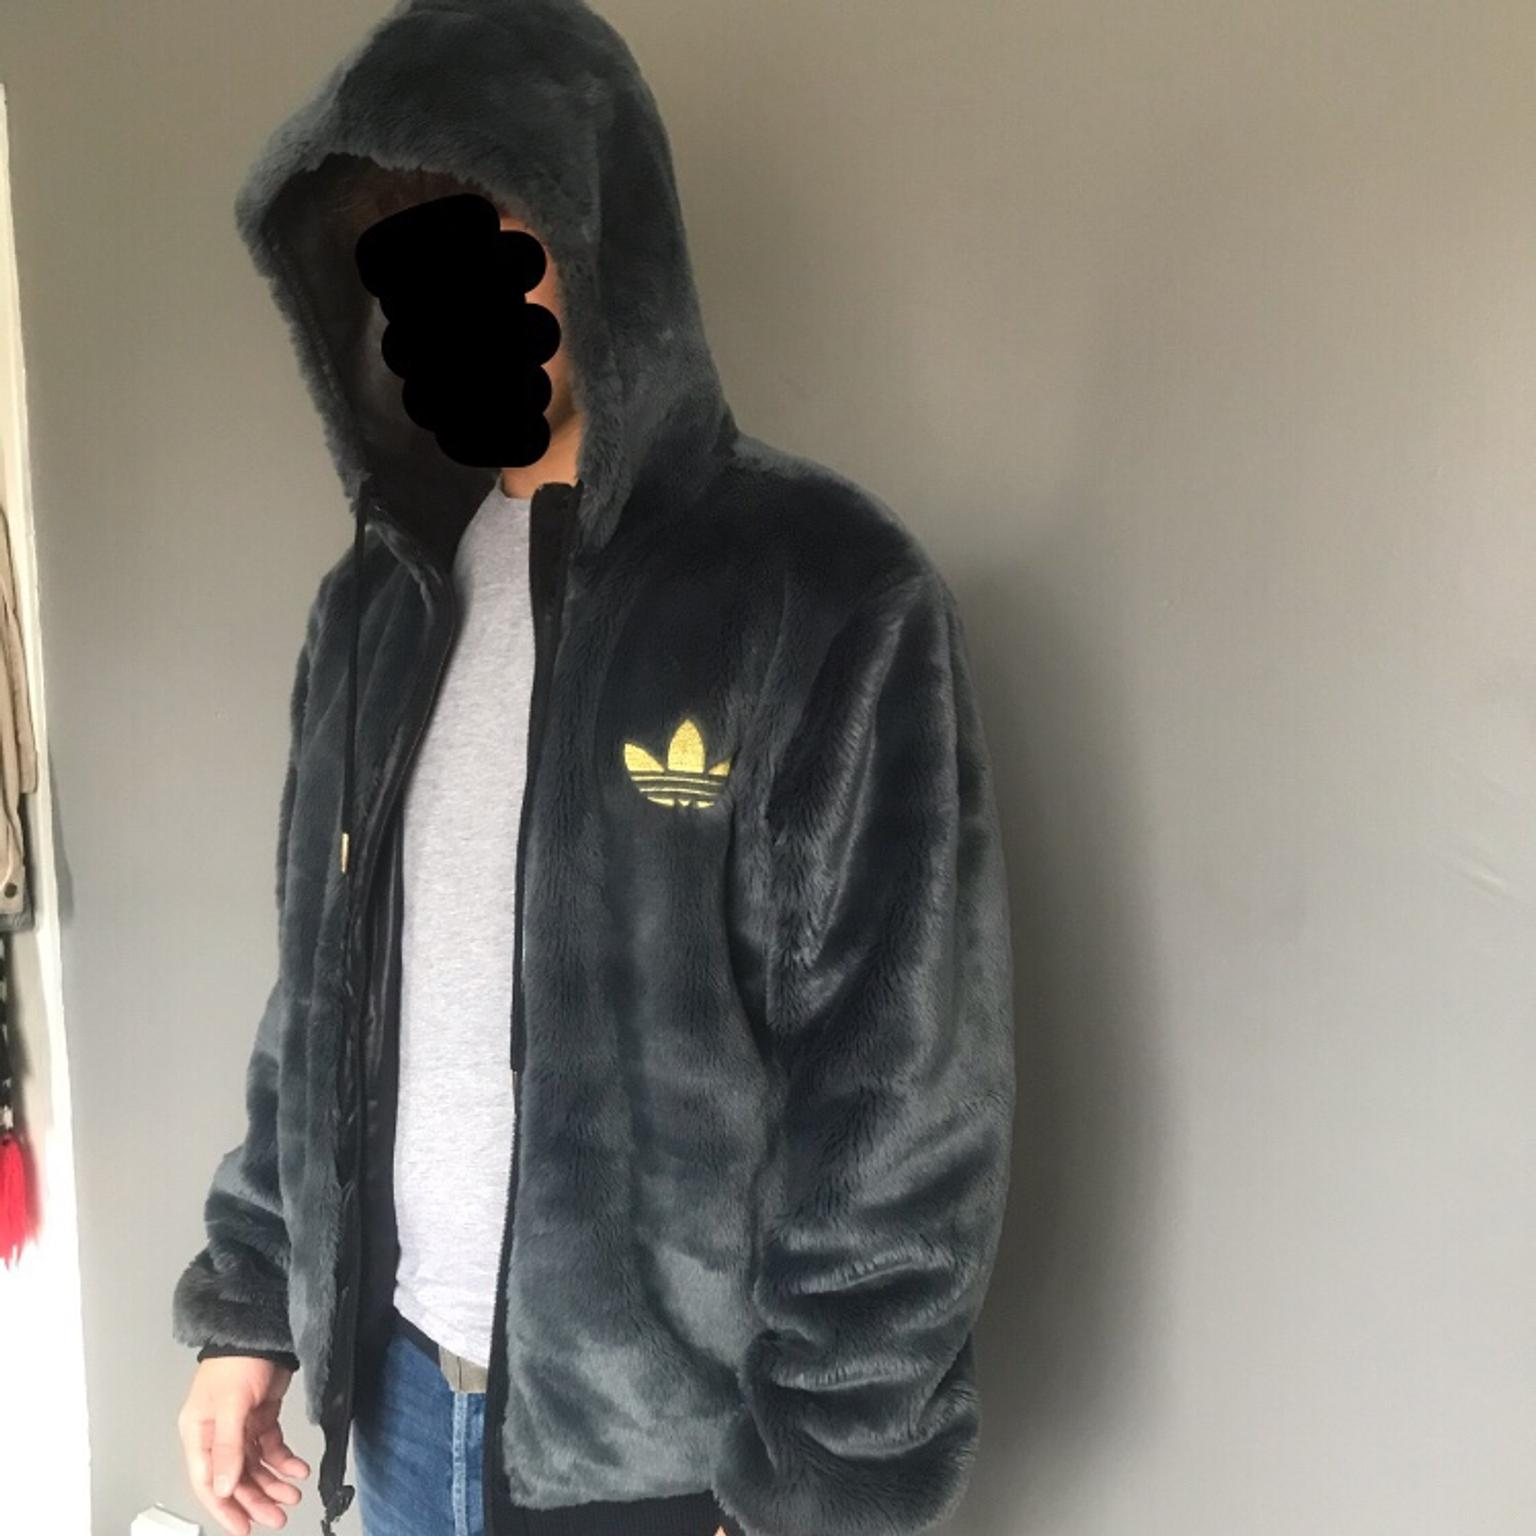 llenar Delgado Atticus  Adidas Chile 62 reversible jacket in M23 Manchester for £50.00 for sale    Shpock